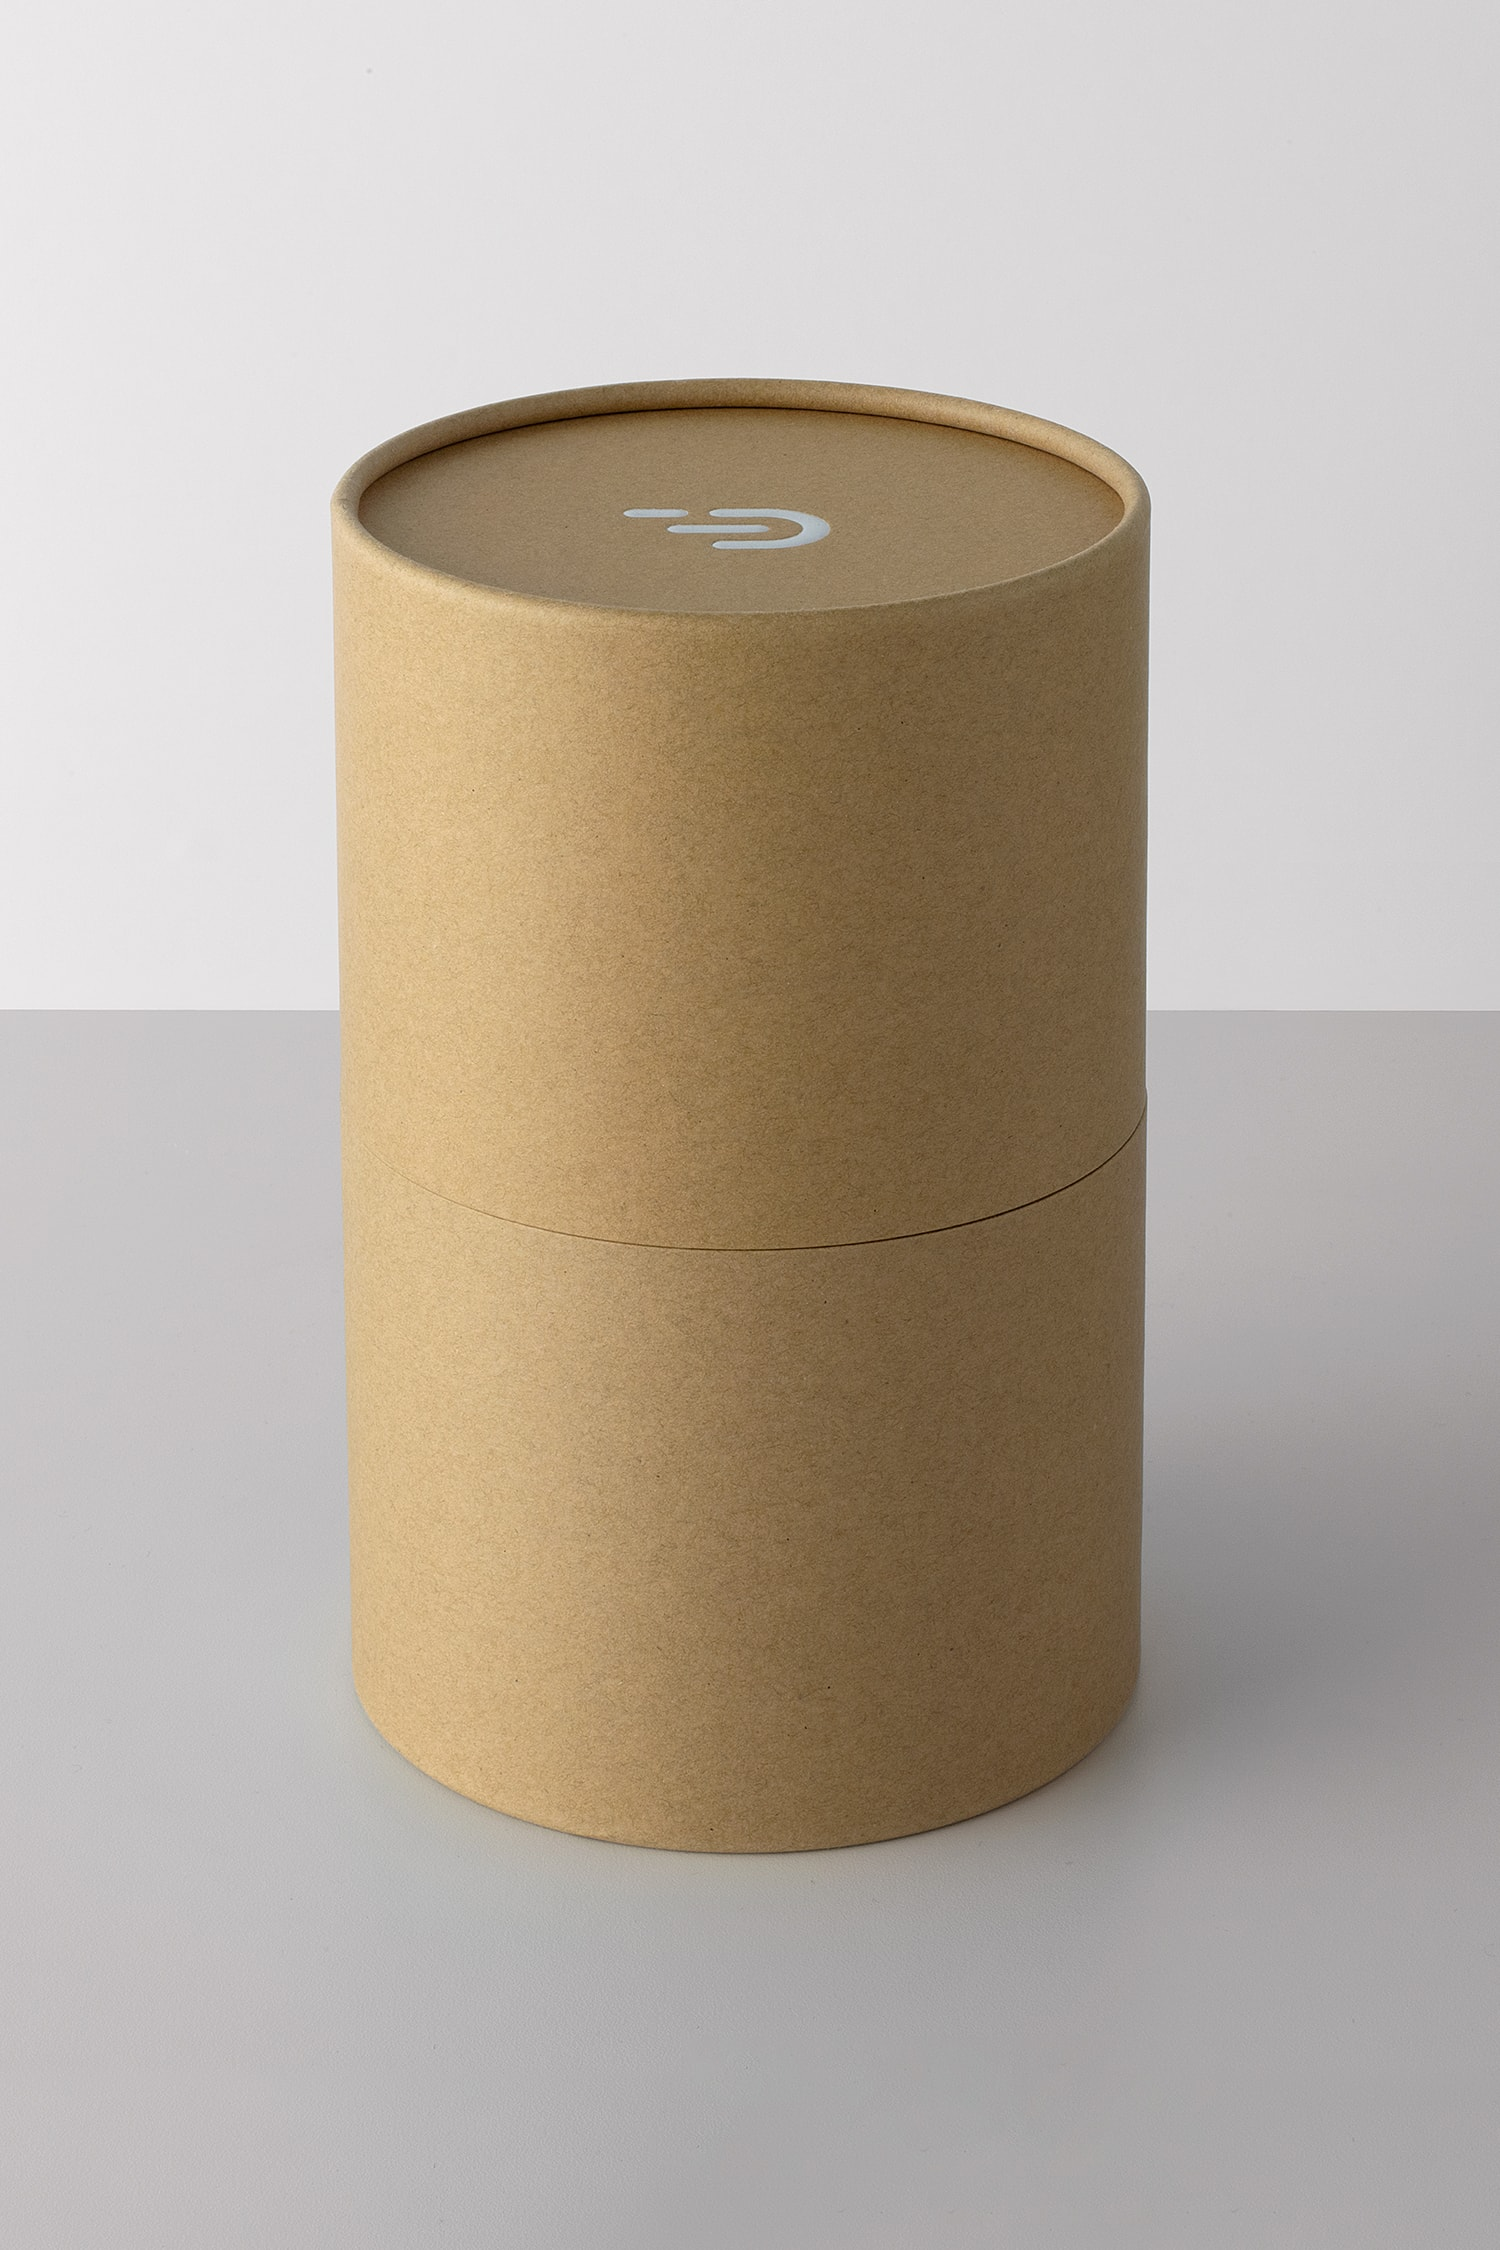 Front view of the DADI Founding Node packaging. The packaging is a cardboard cylinder with the DADI logo printed in white on the top surface.